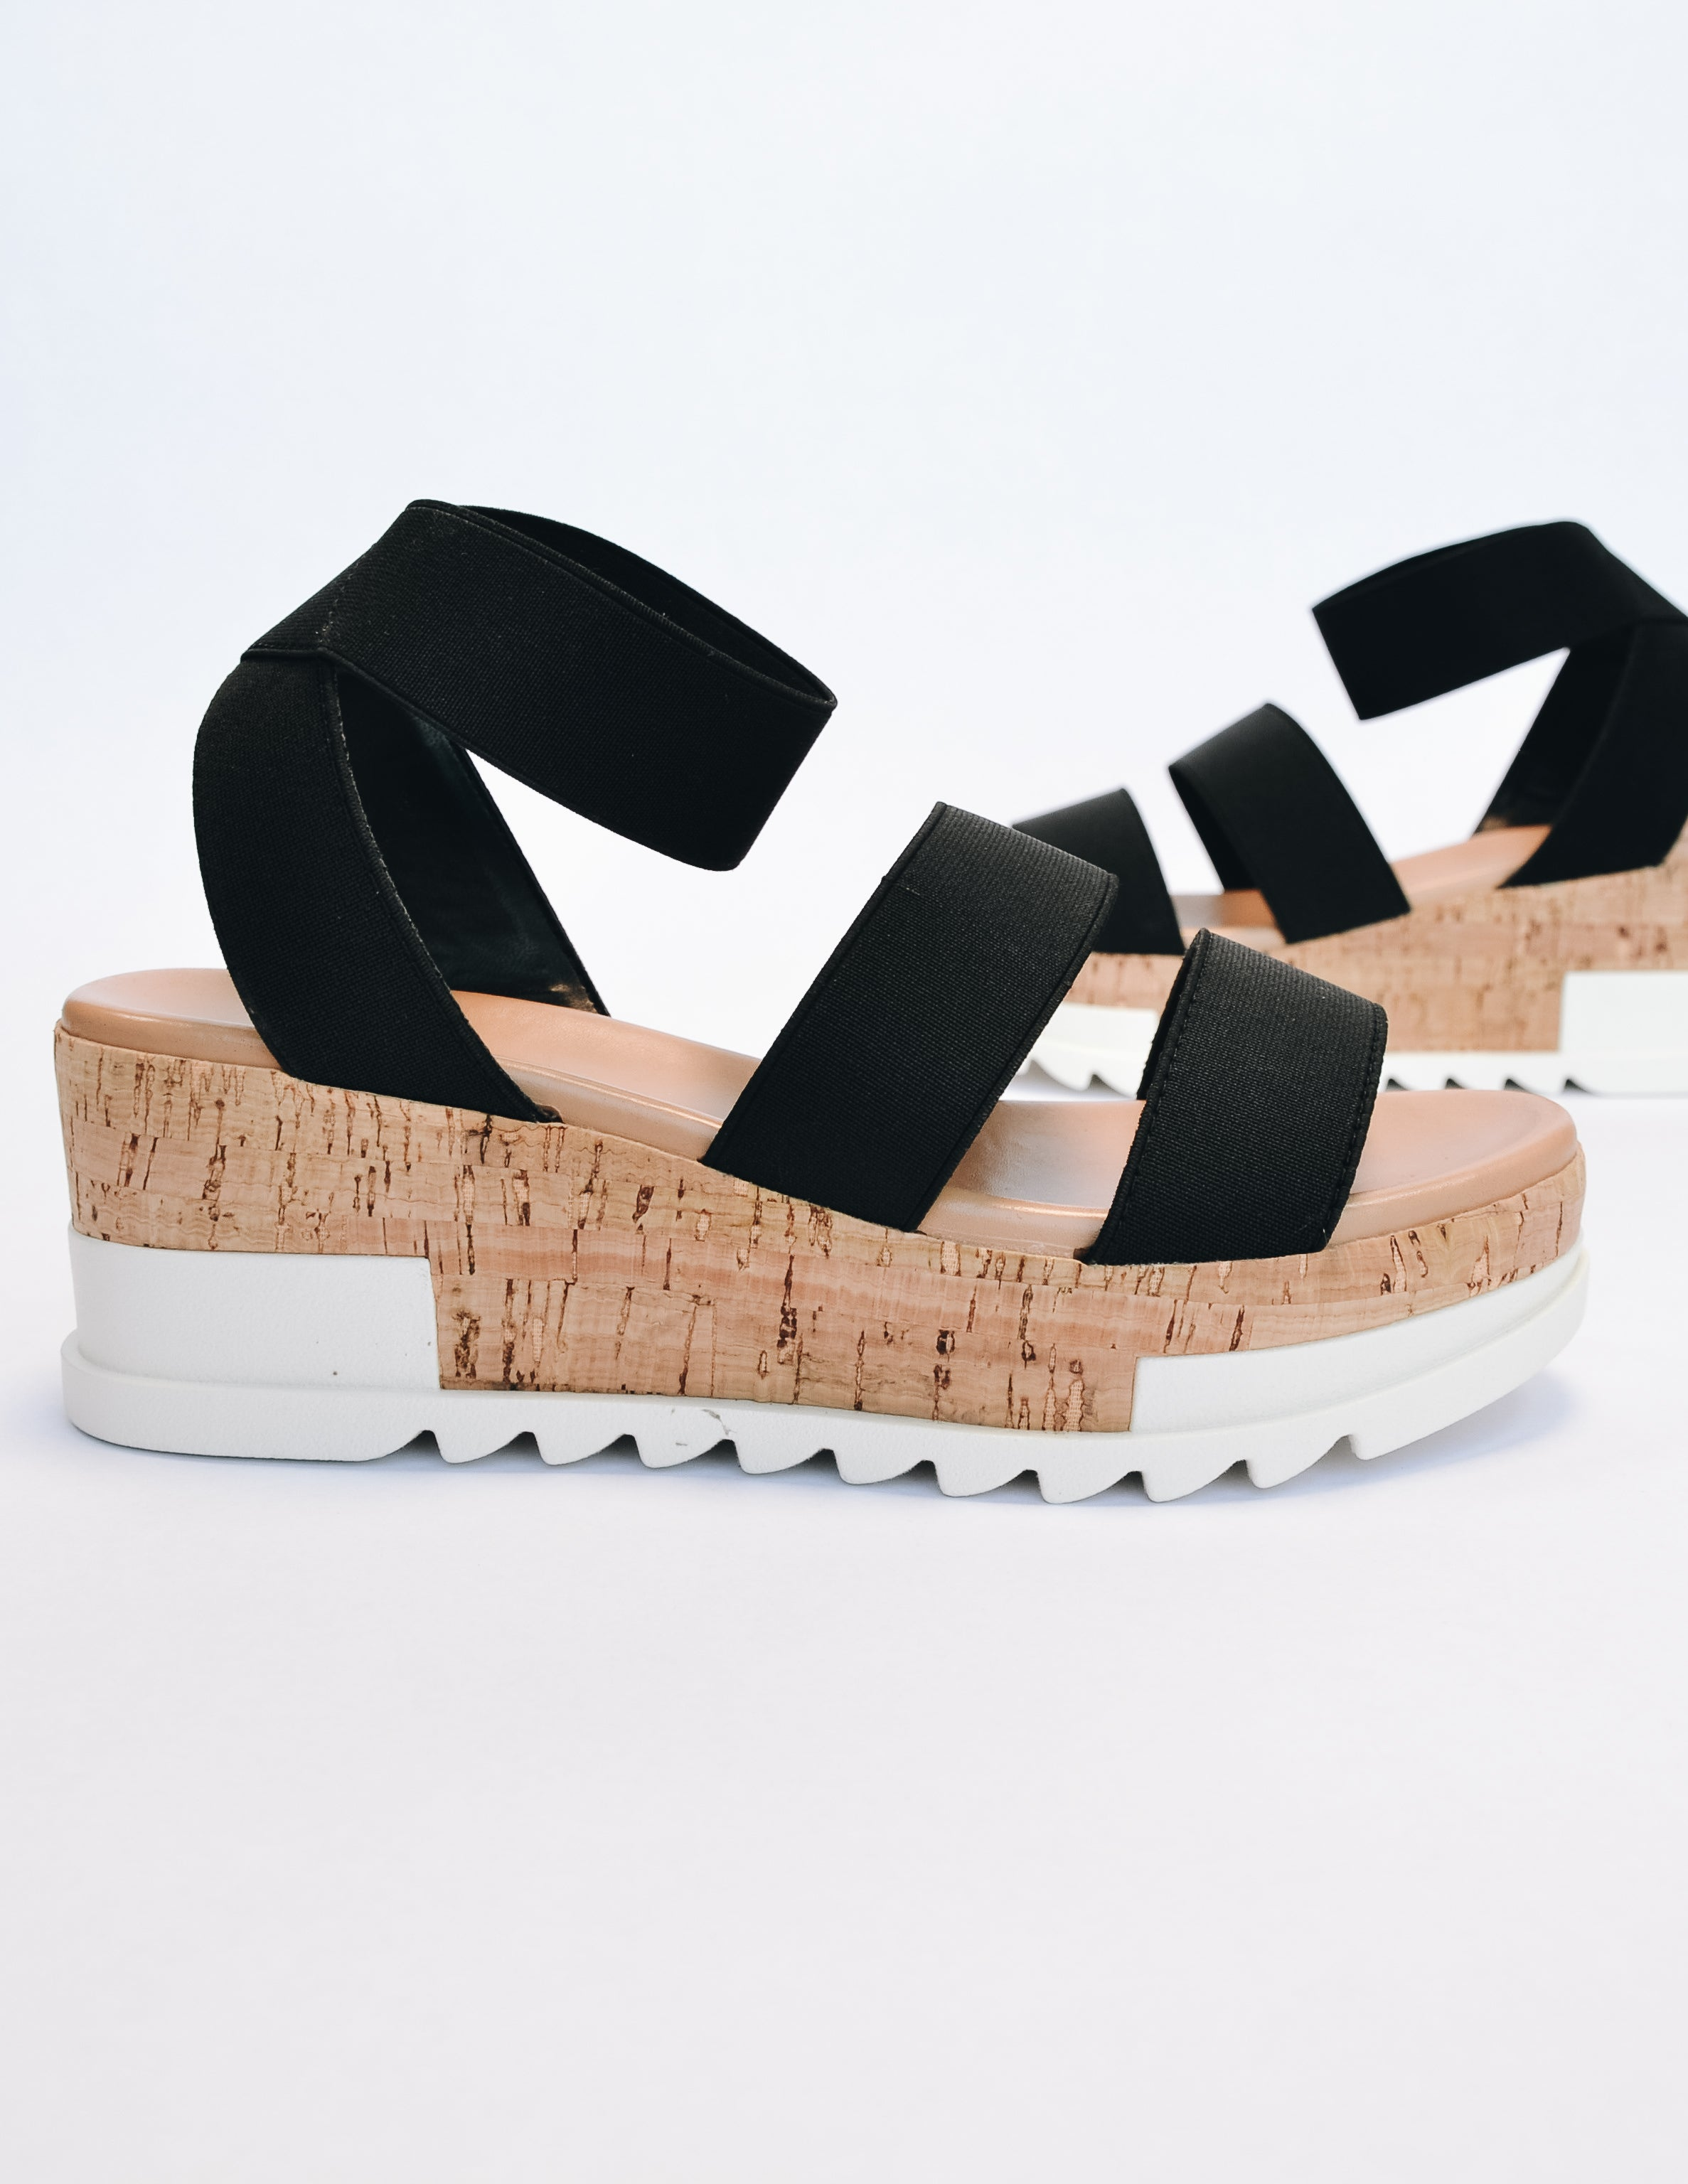 Black elastic platform sandal on white background - elle bleu